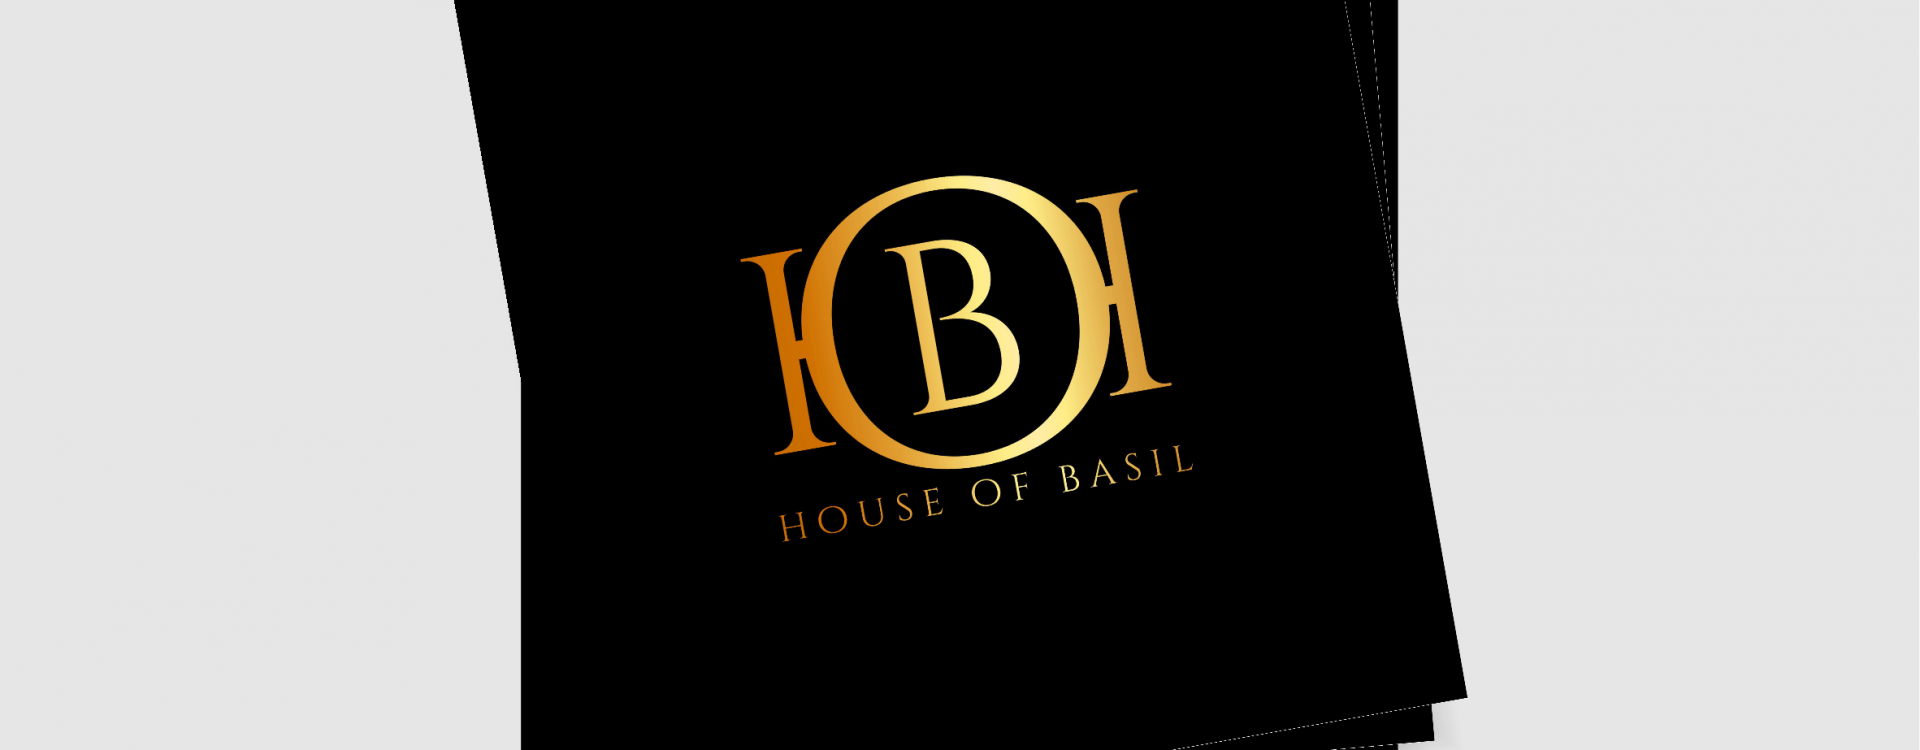 HOUSE OF BASIL